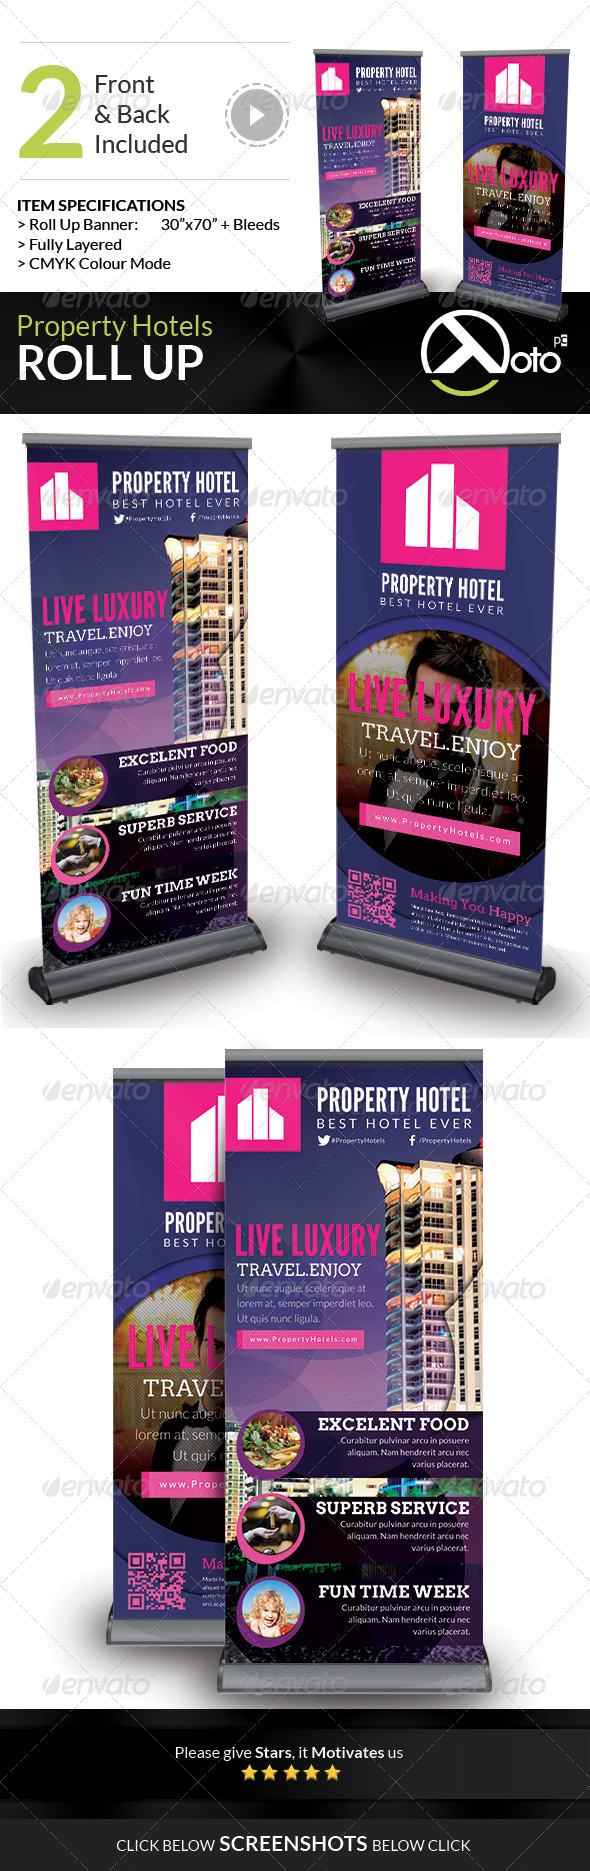 GraphicRiver Property Hotel Roll Up Banners 7025585